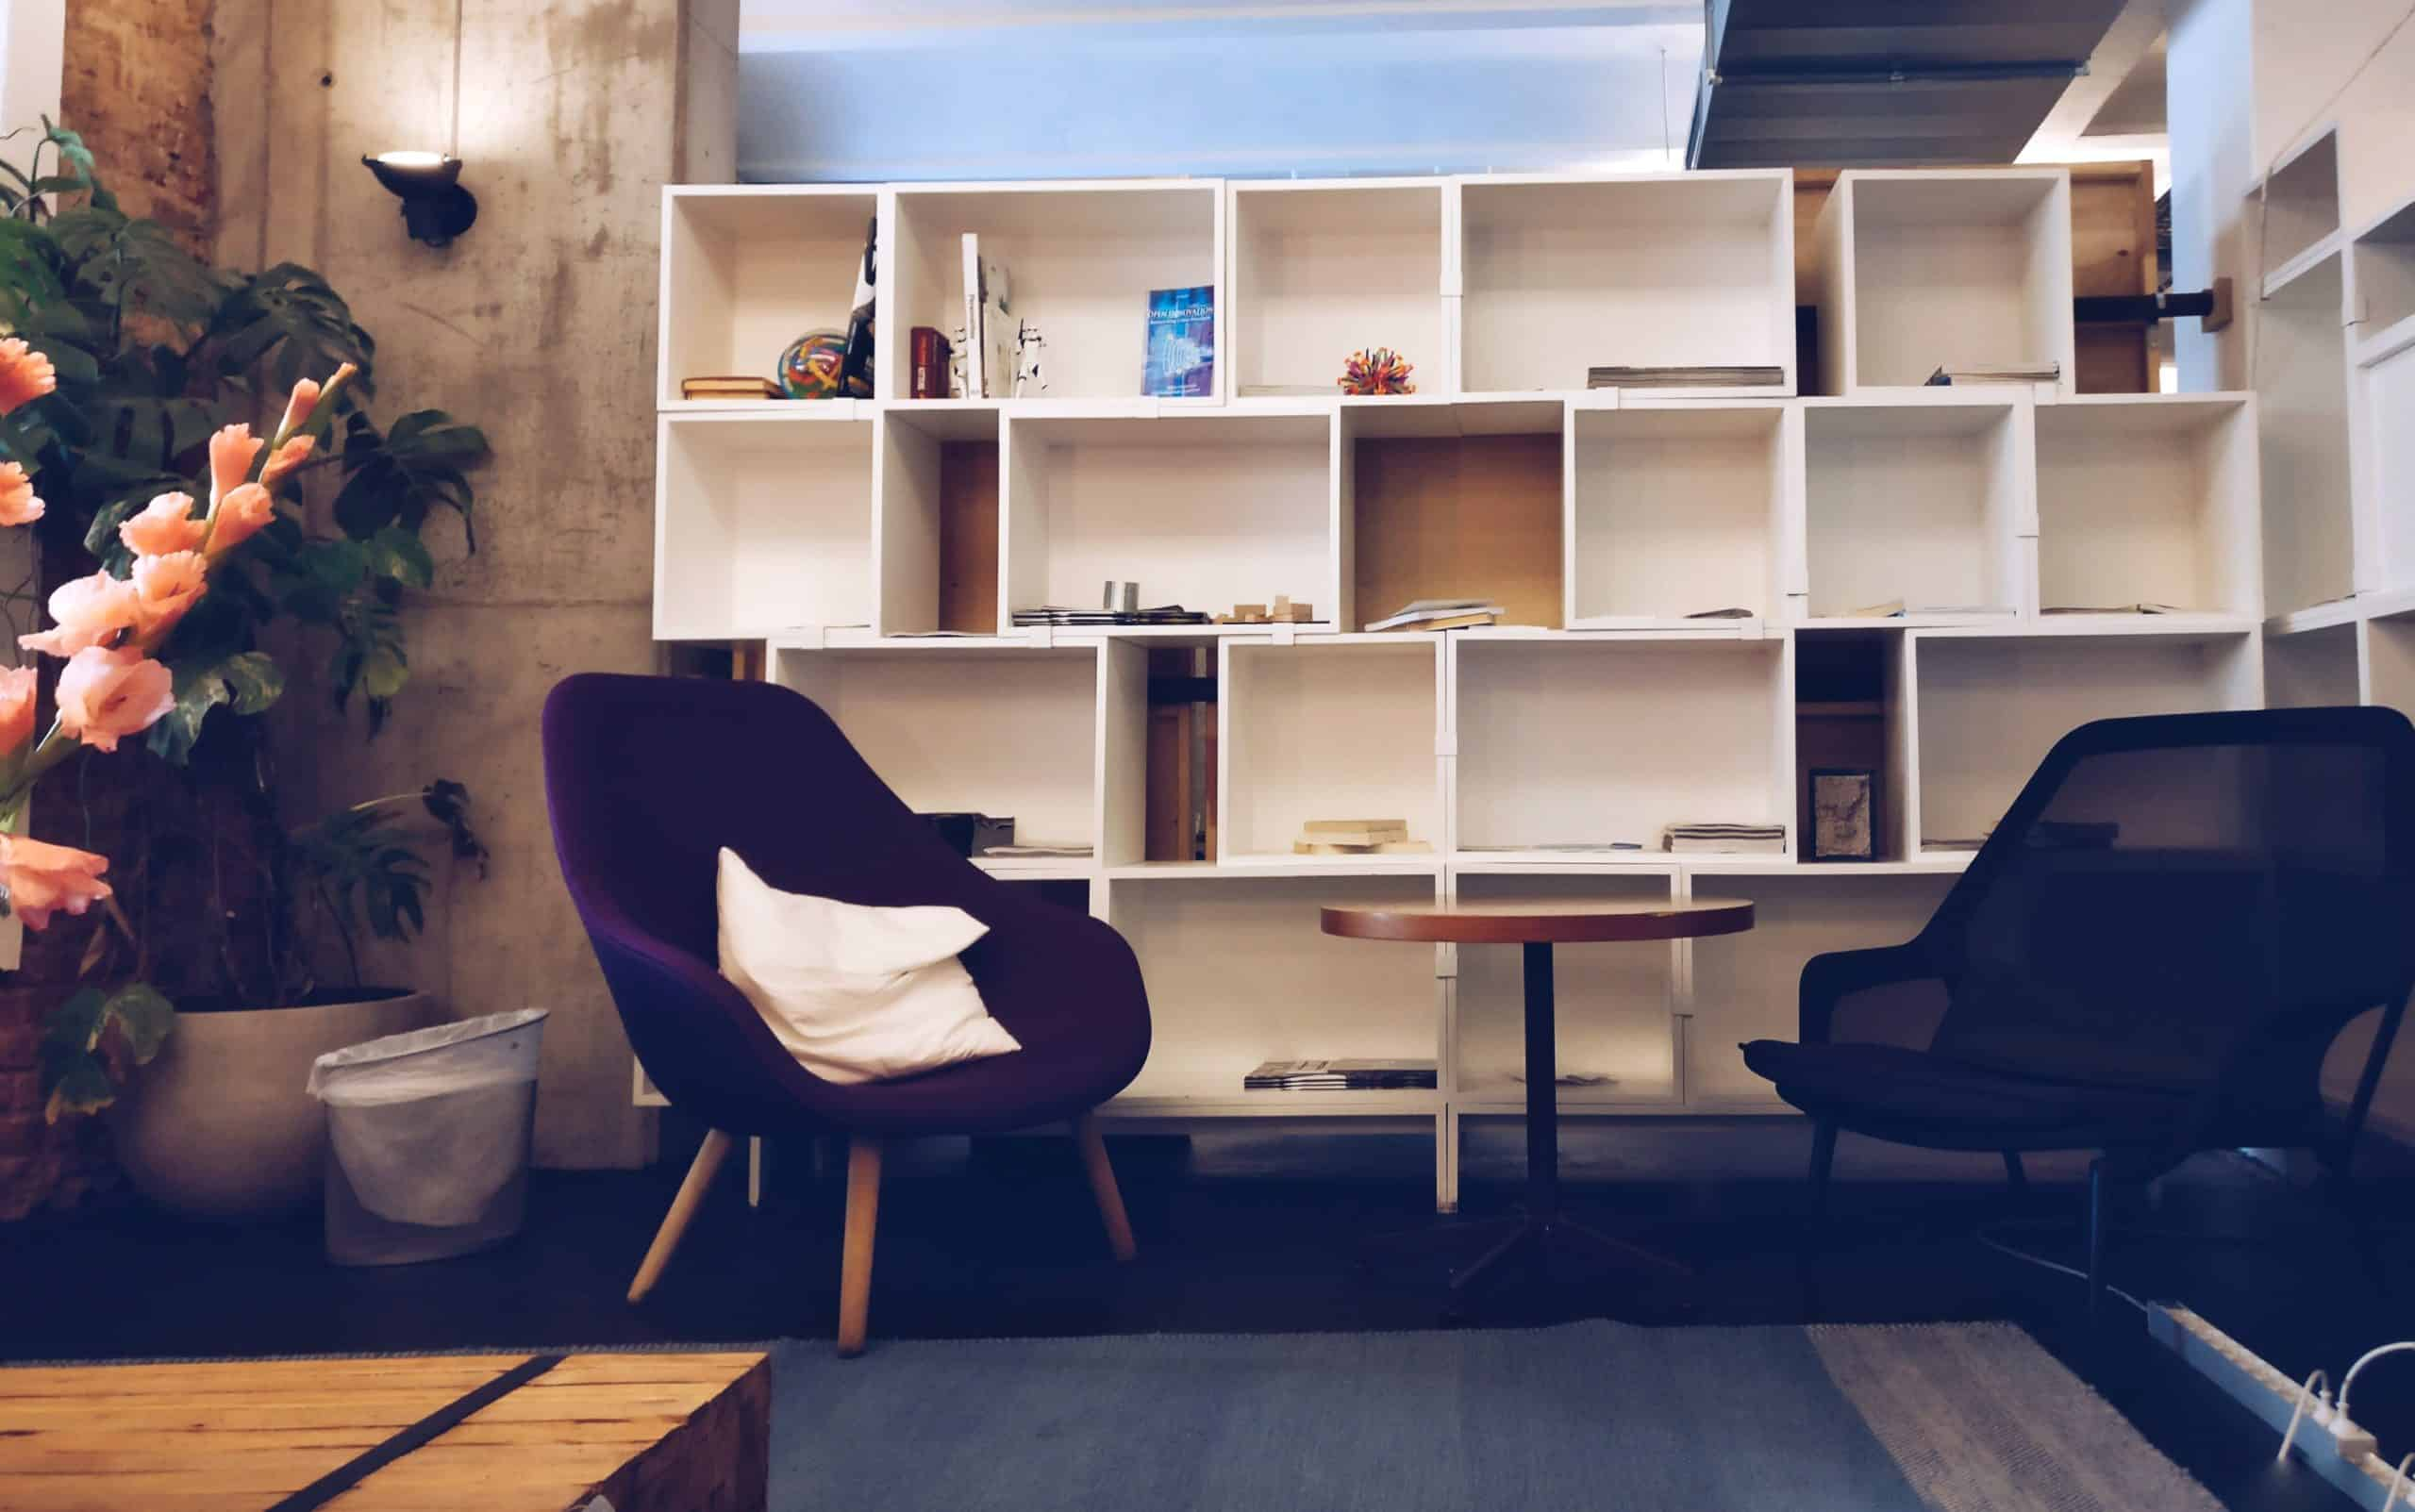 Home Storage Ideas That Save Space in the Home